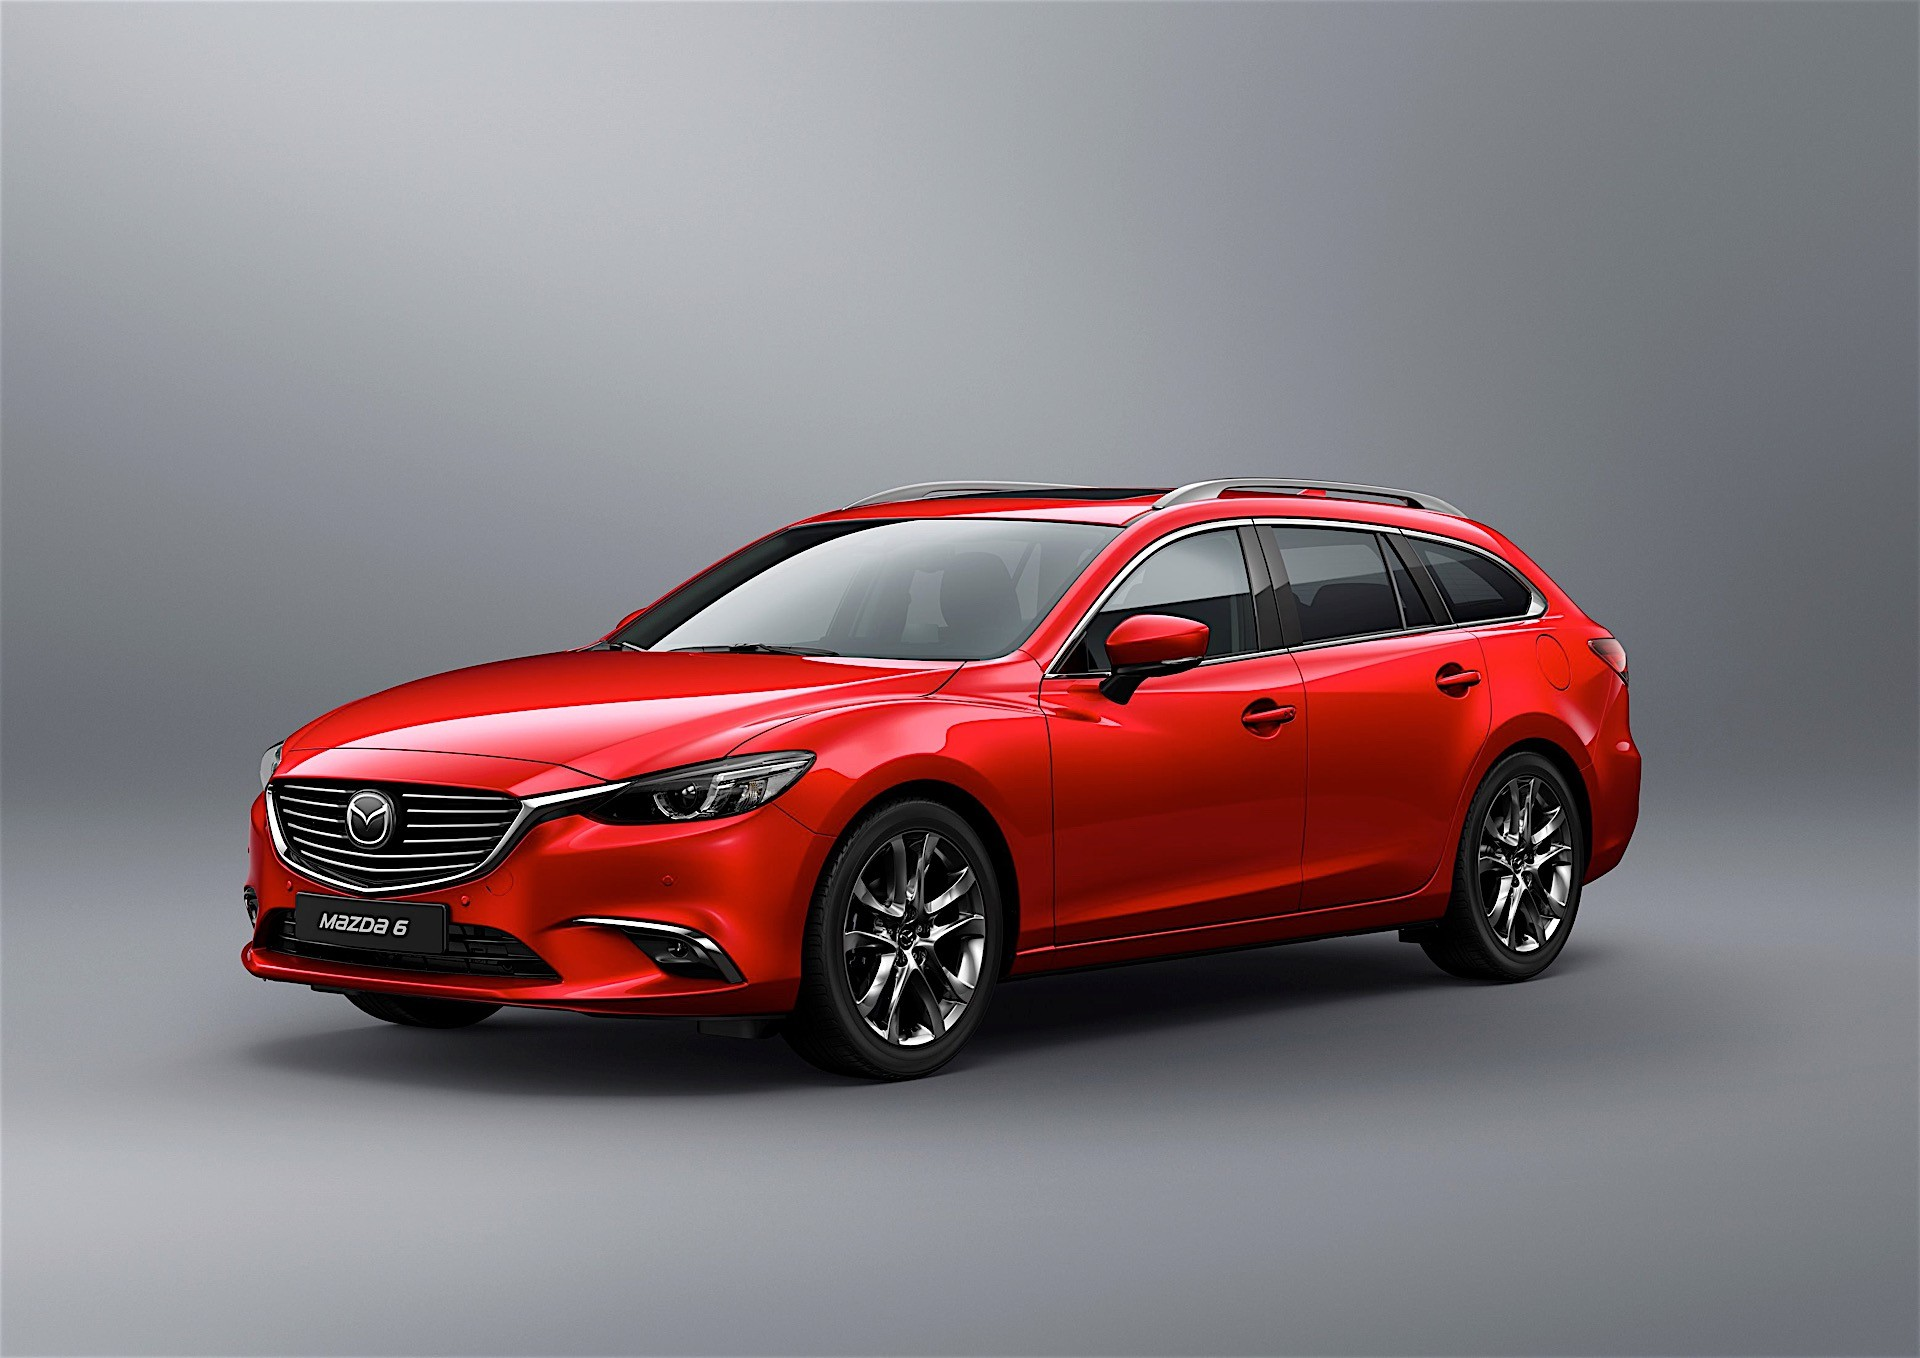 https://s1.cdn.autoevolution.com/images/news/gallery/2017-mazda6-launching-across-europe-this-autumn_39.jpg